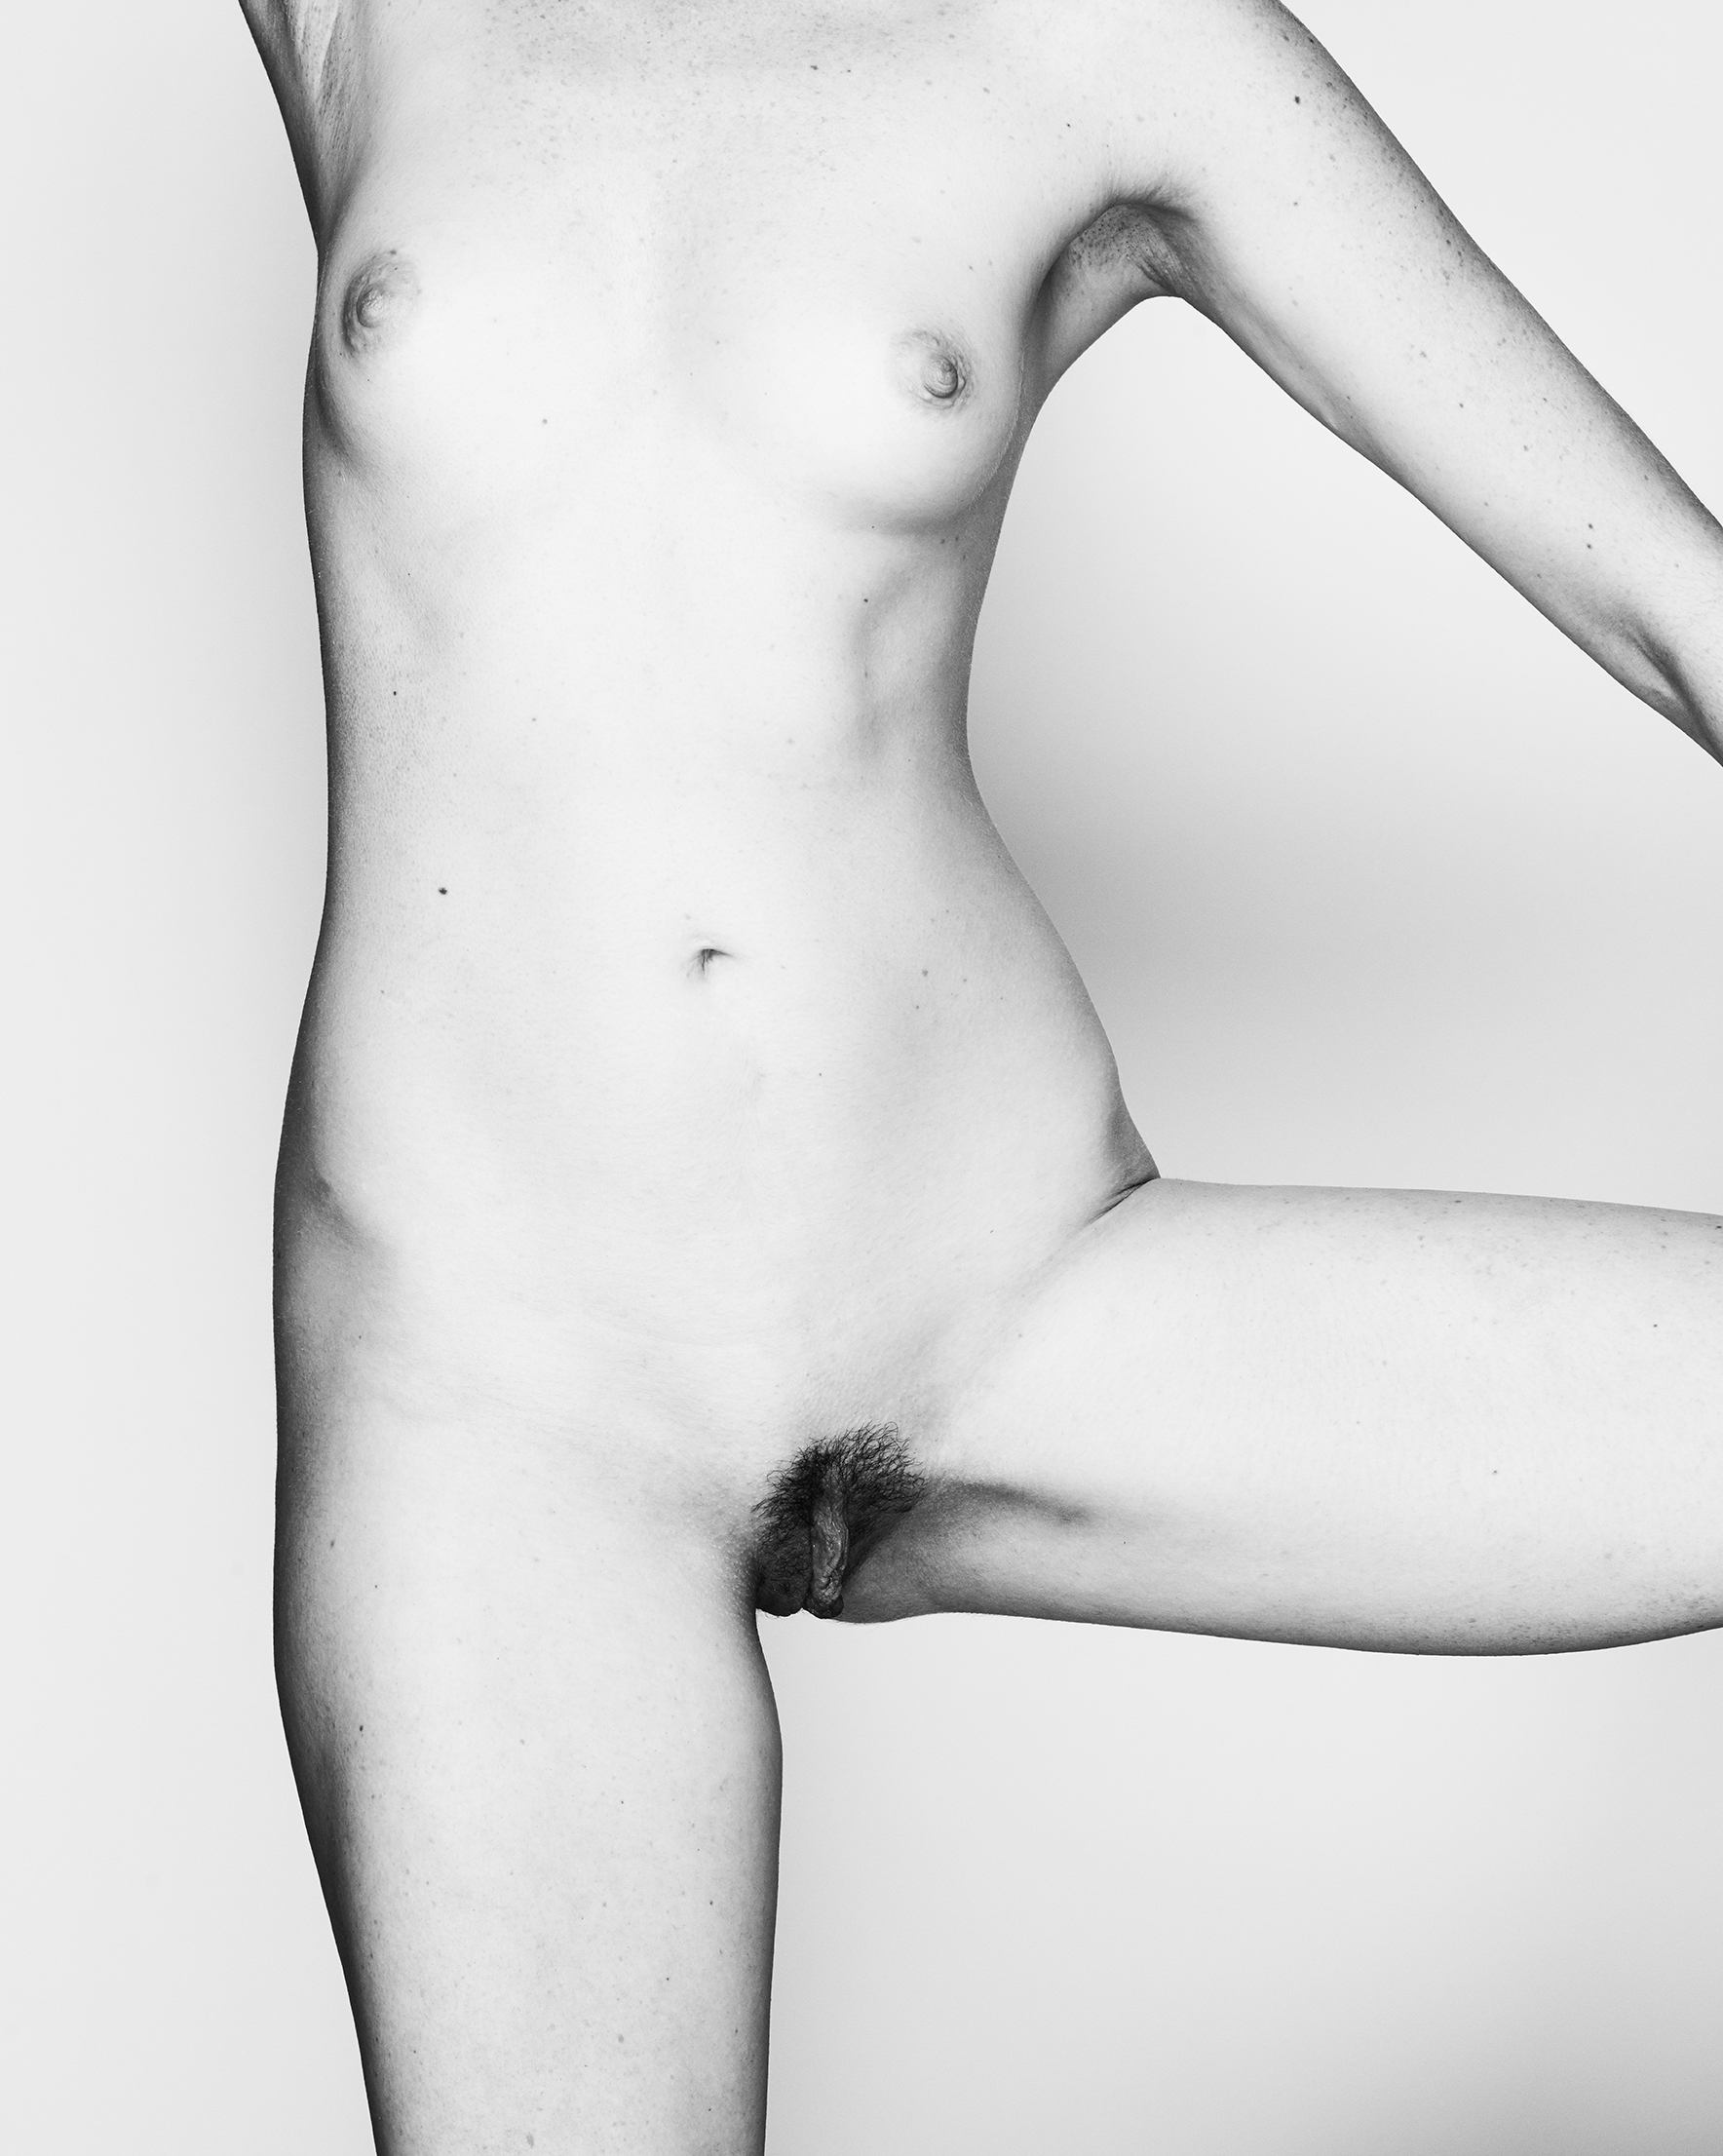 151130_BodyScapes_112_F.jpg